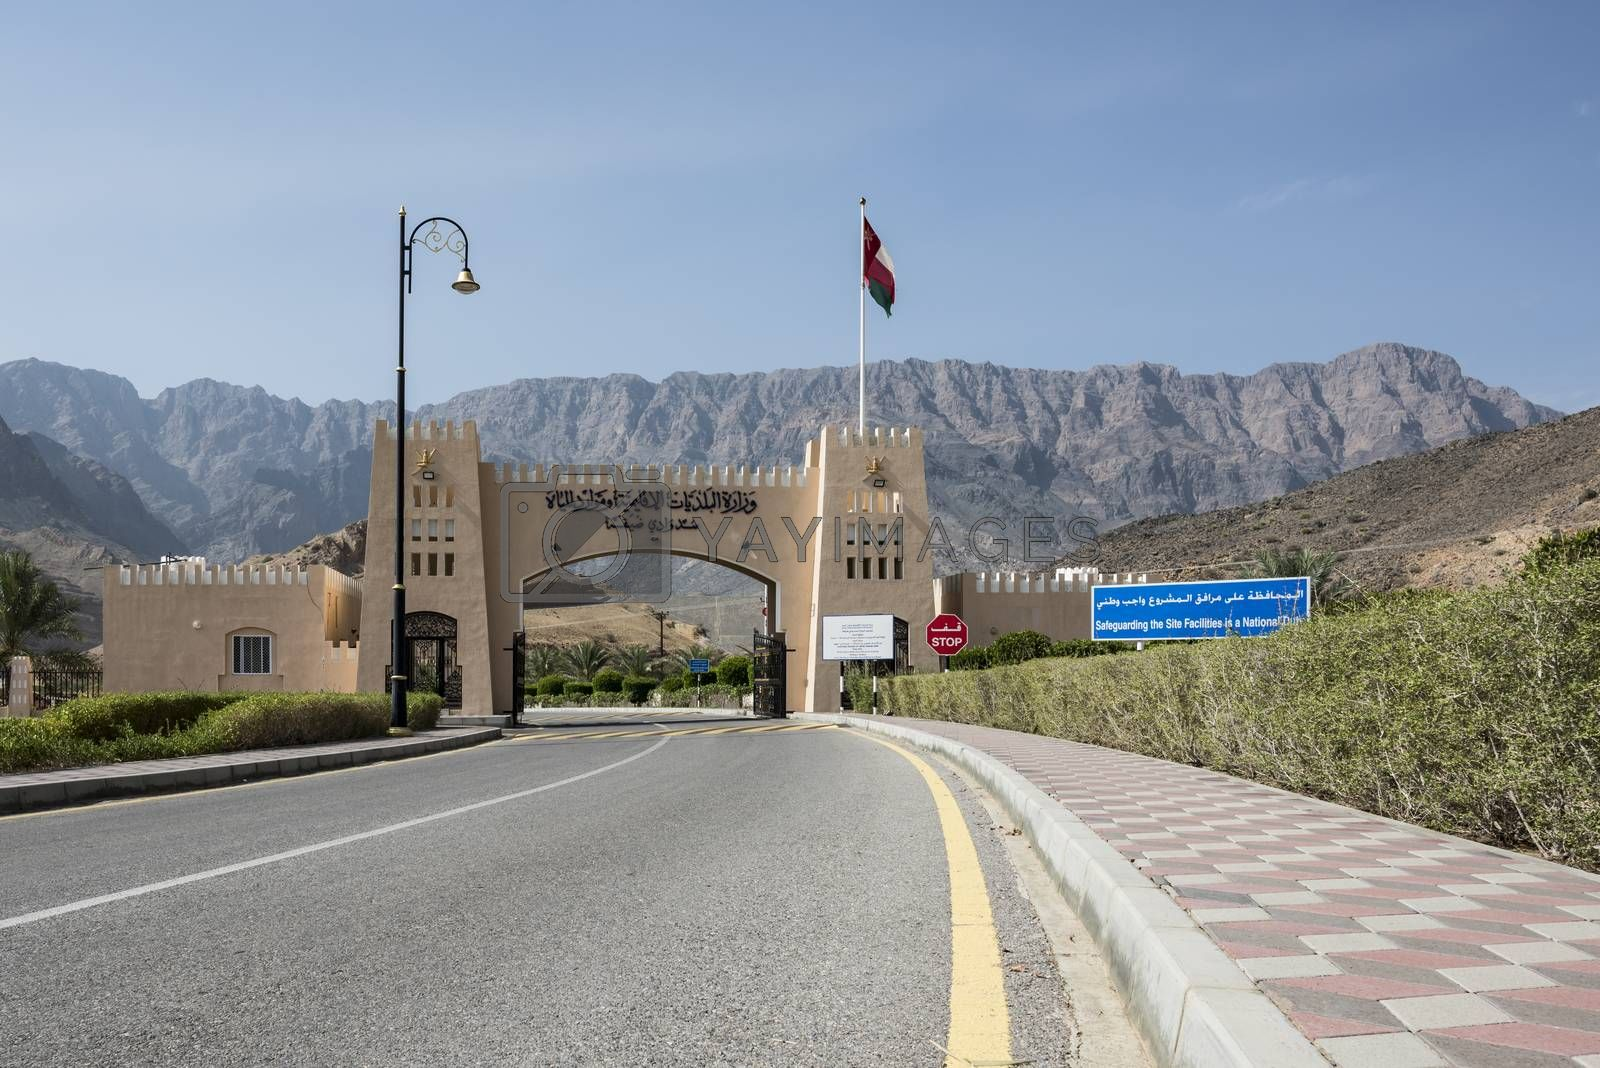 Main Entrance and security gate of Wadi Dayqah Dam, Sultanate of Oman